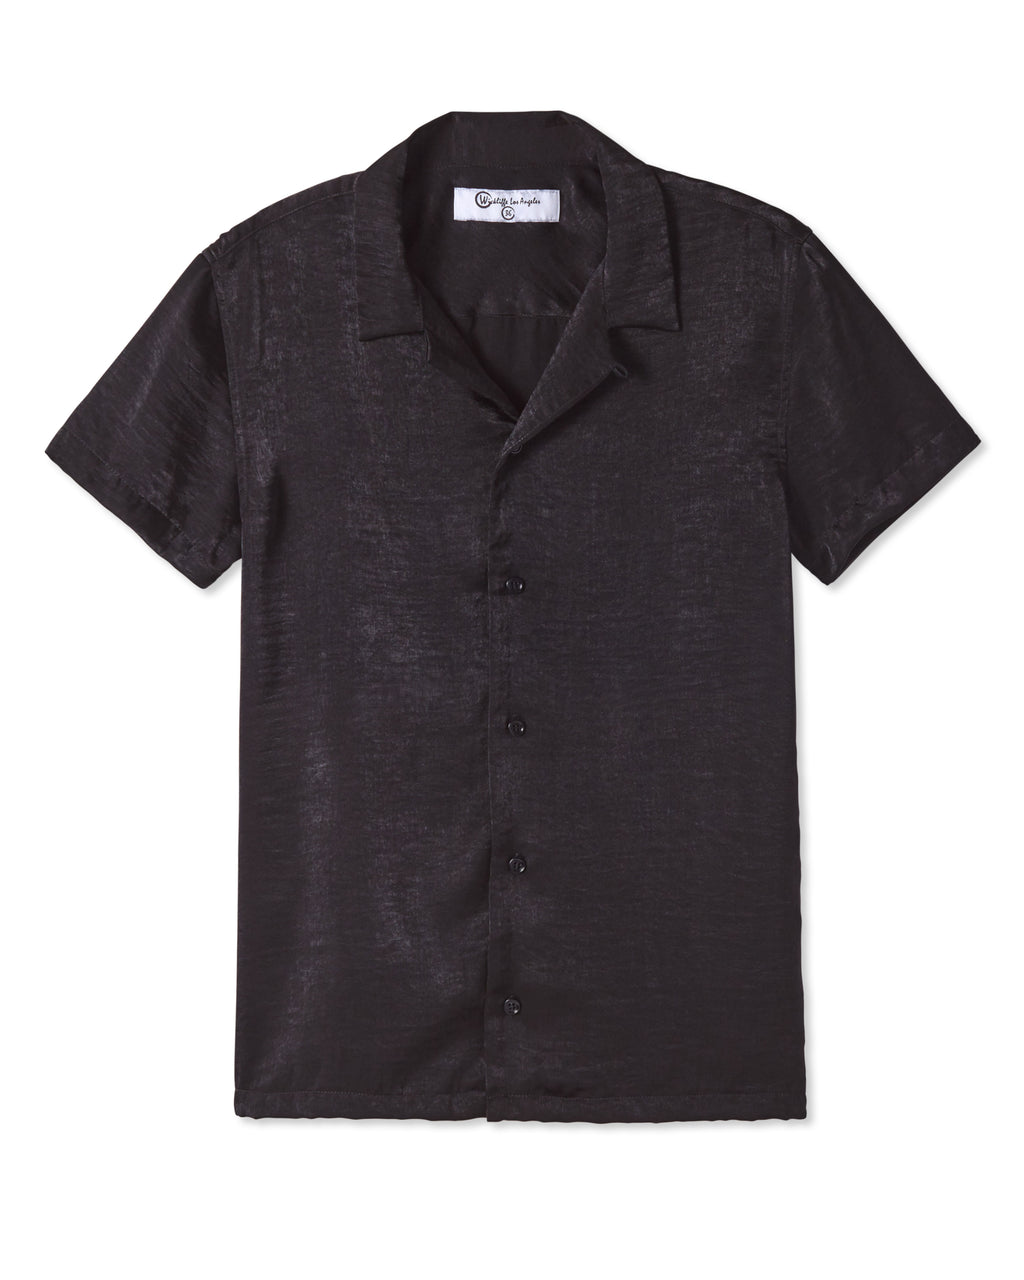 STERLING SHARK BITE COLLAR SHORT SLEEVE SHIRT NOIR